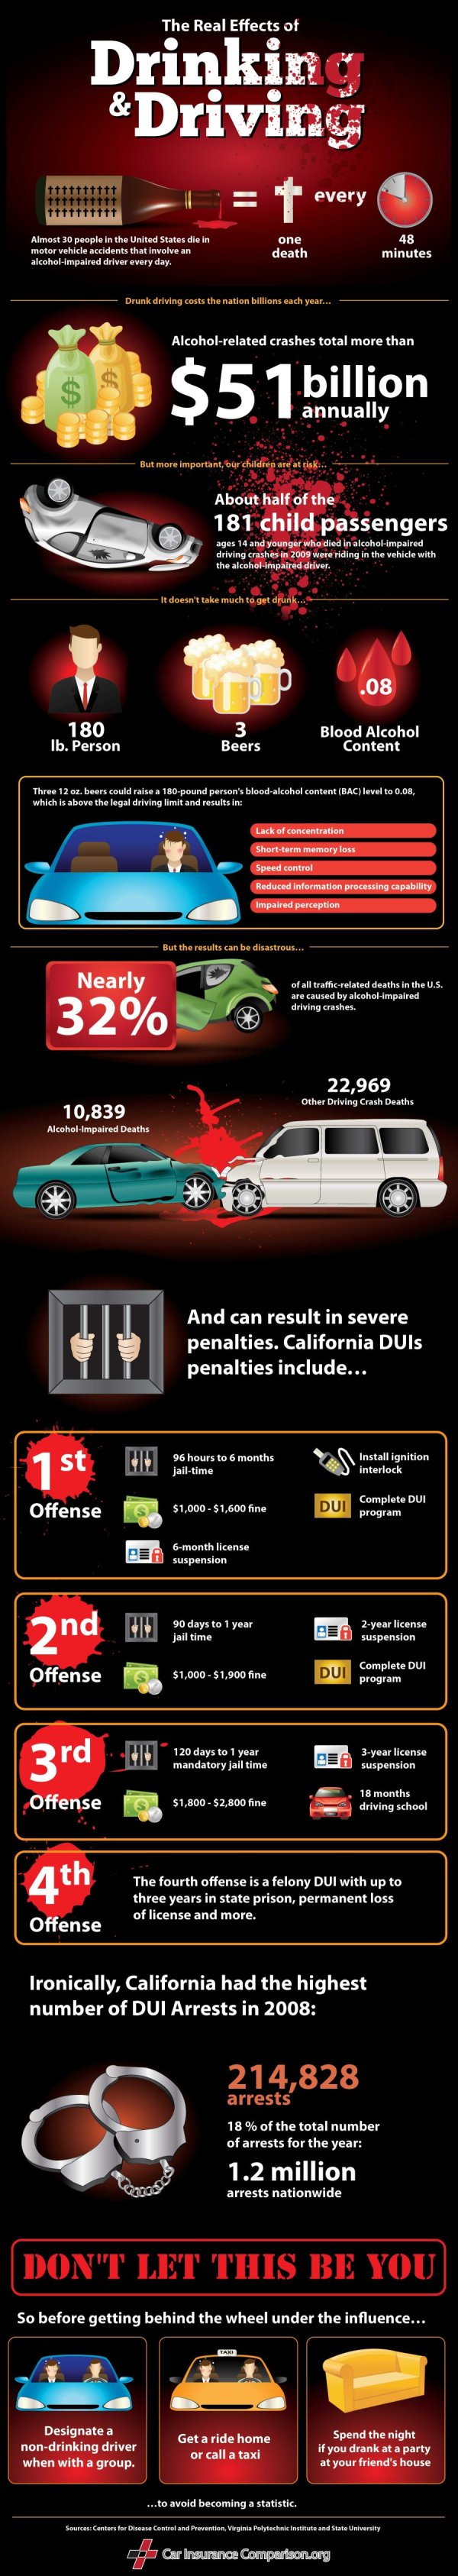 Drunk Driving by the Numbers infographic